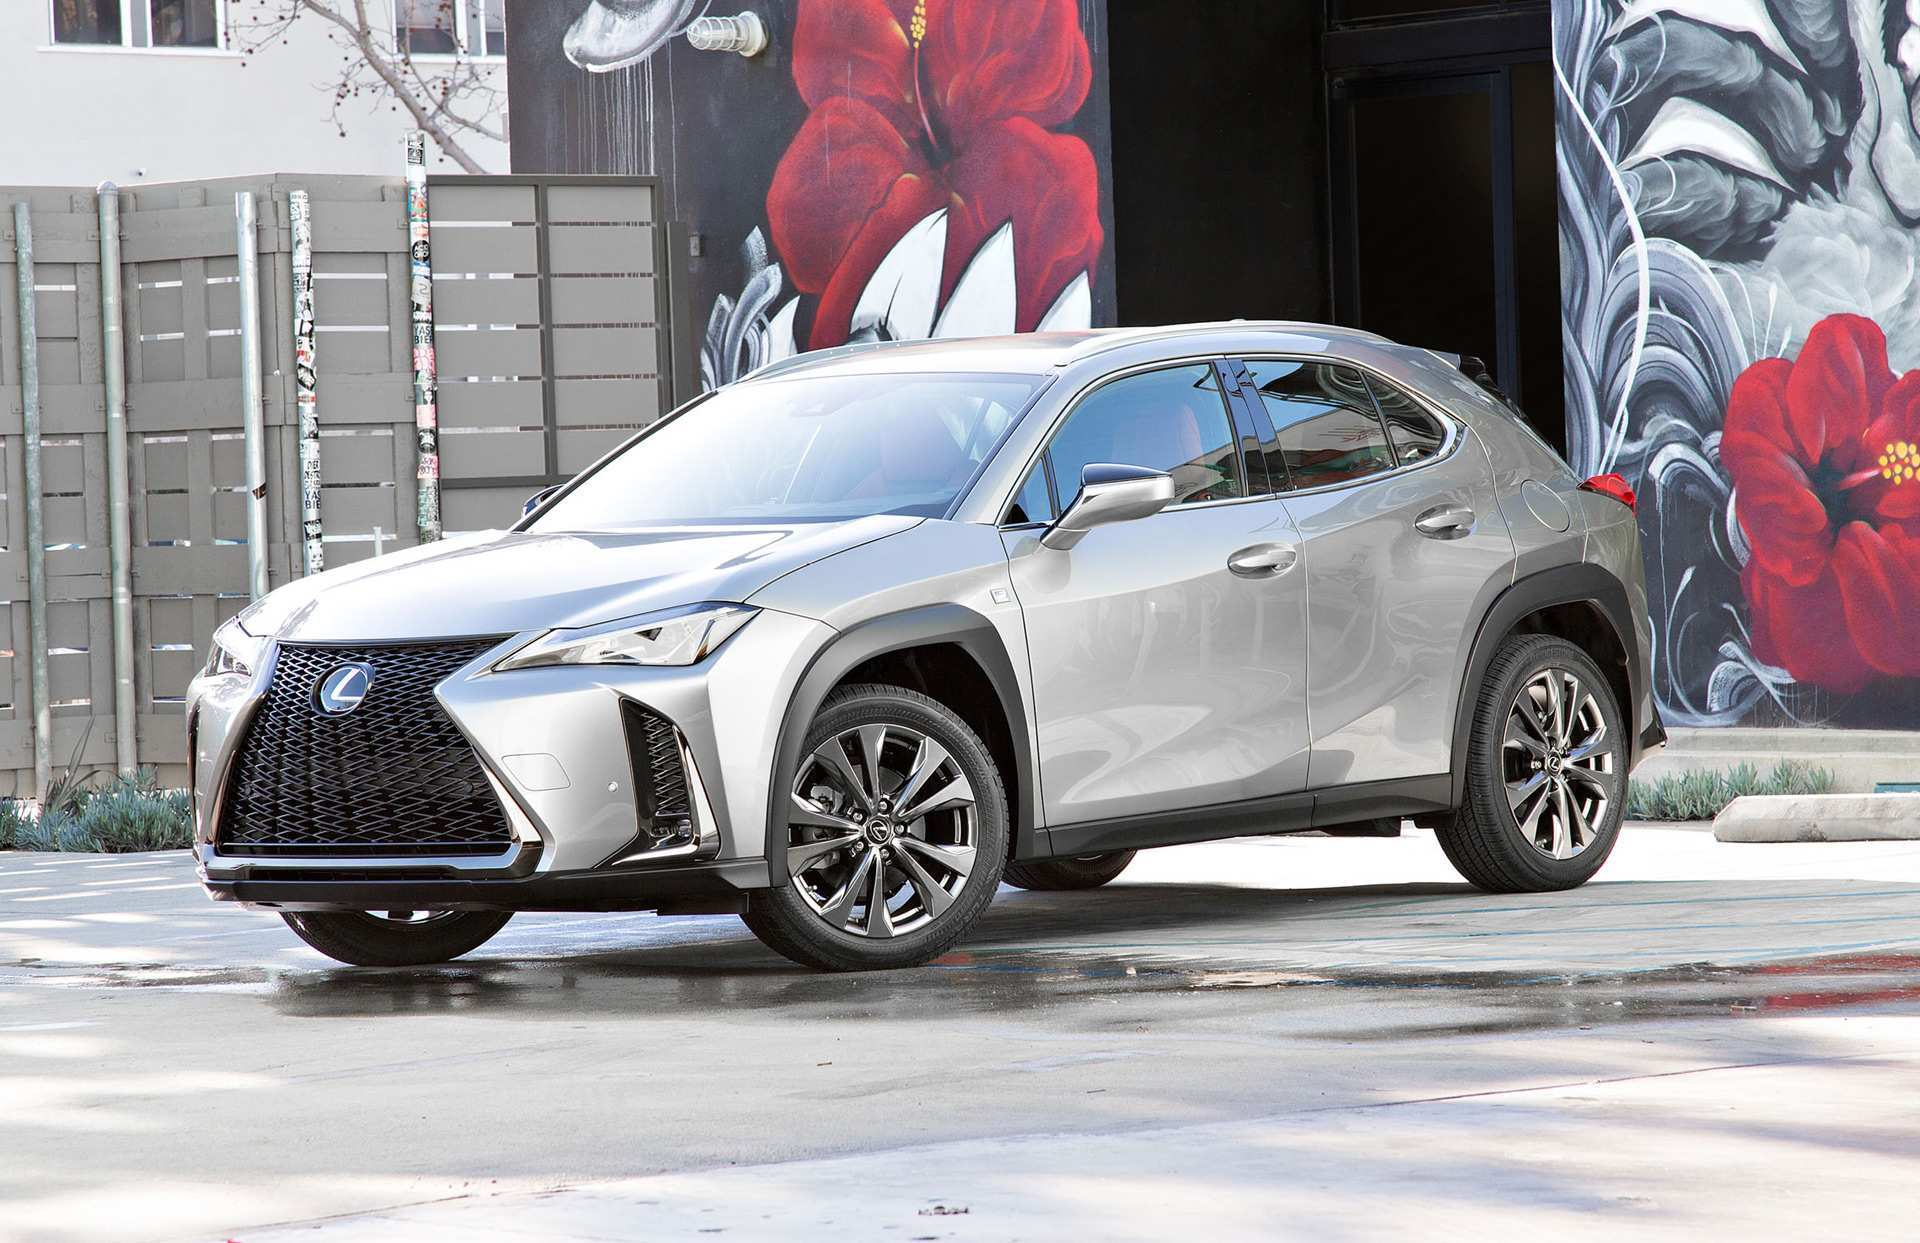 37 New New 2019 Lexus Plug In Hybrid Redesign History with New 2019 Lexus Plug In Hybrid Redesign